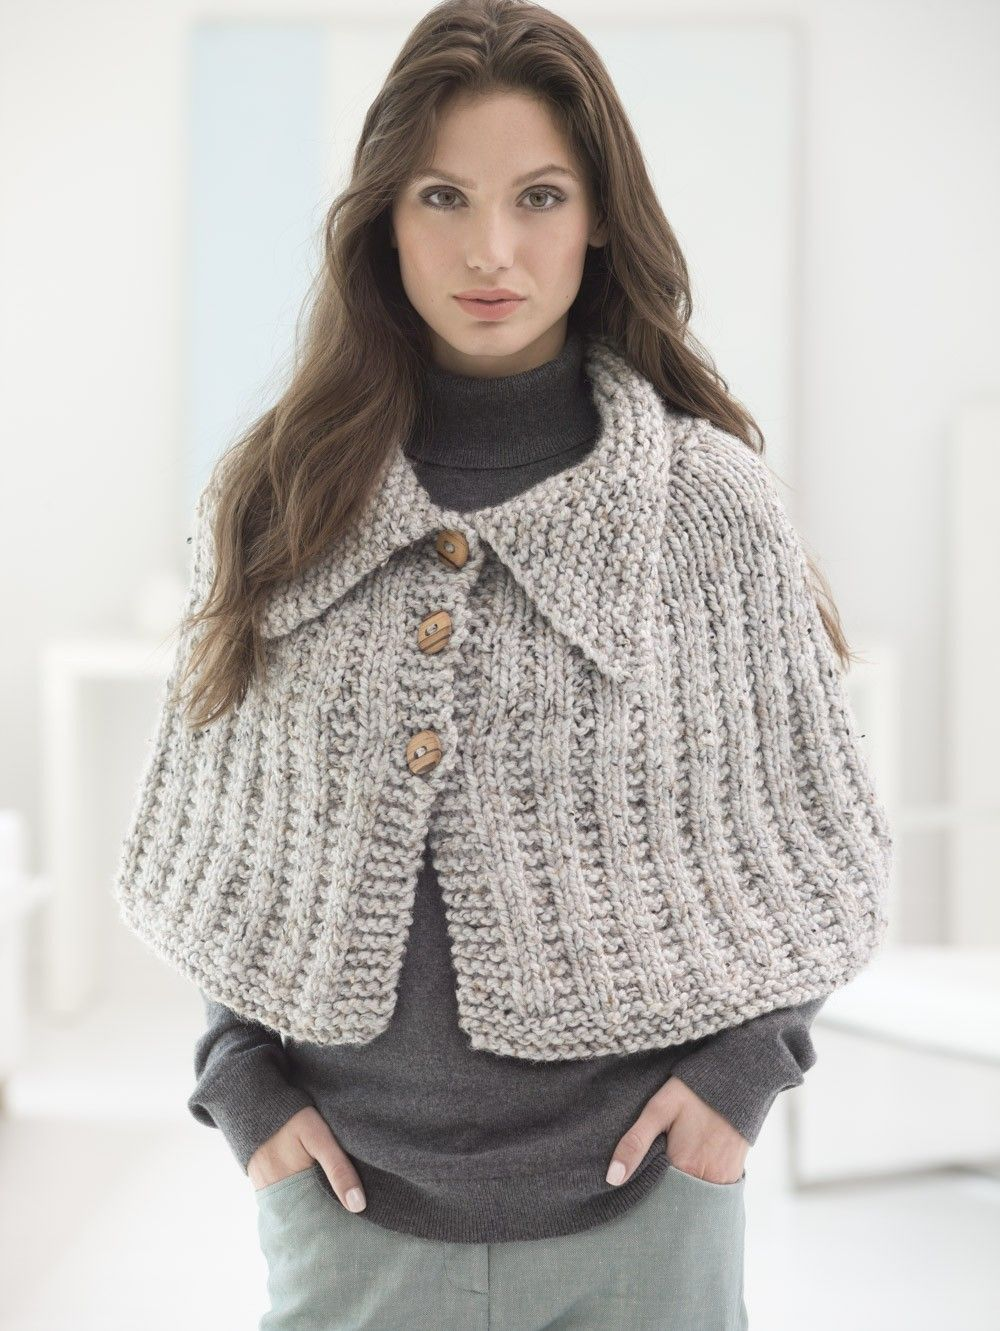 Quick knit capelet lion brand yarn lion brand pinterest knit this easy quick knit capelet with our featured yarn free pattern calls for 4 balls of wool ease thick quick in grey marble and size 13 36 inch bankloansurffo Gallery